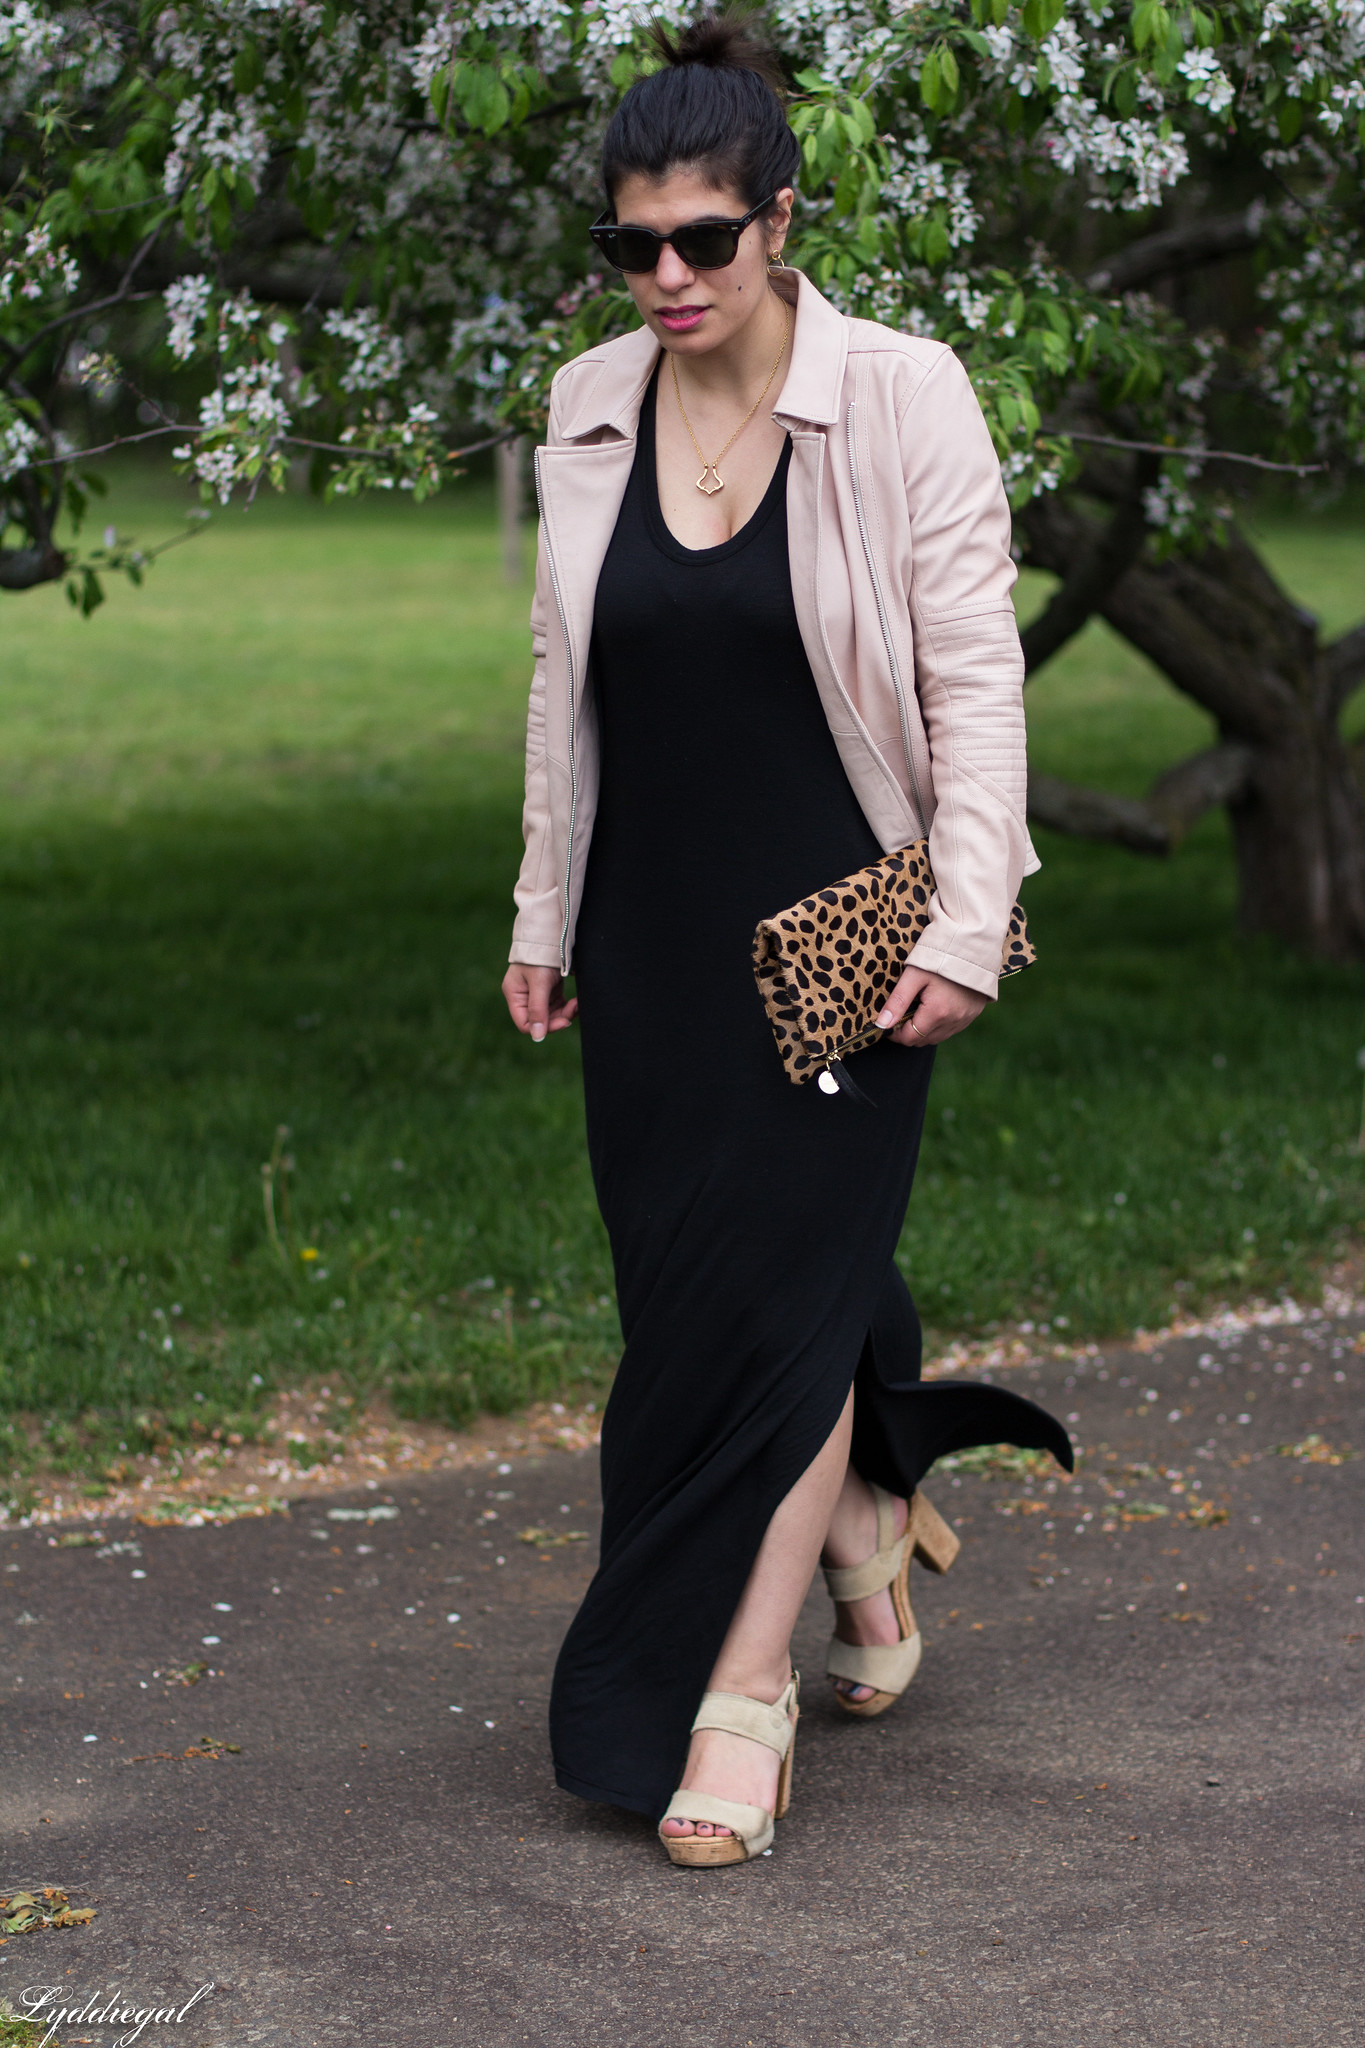 blush leather jacket, black maxi dress, leopard foldover clutch-9.jpg